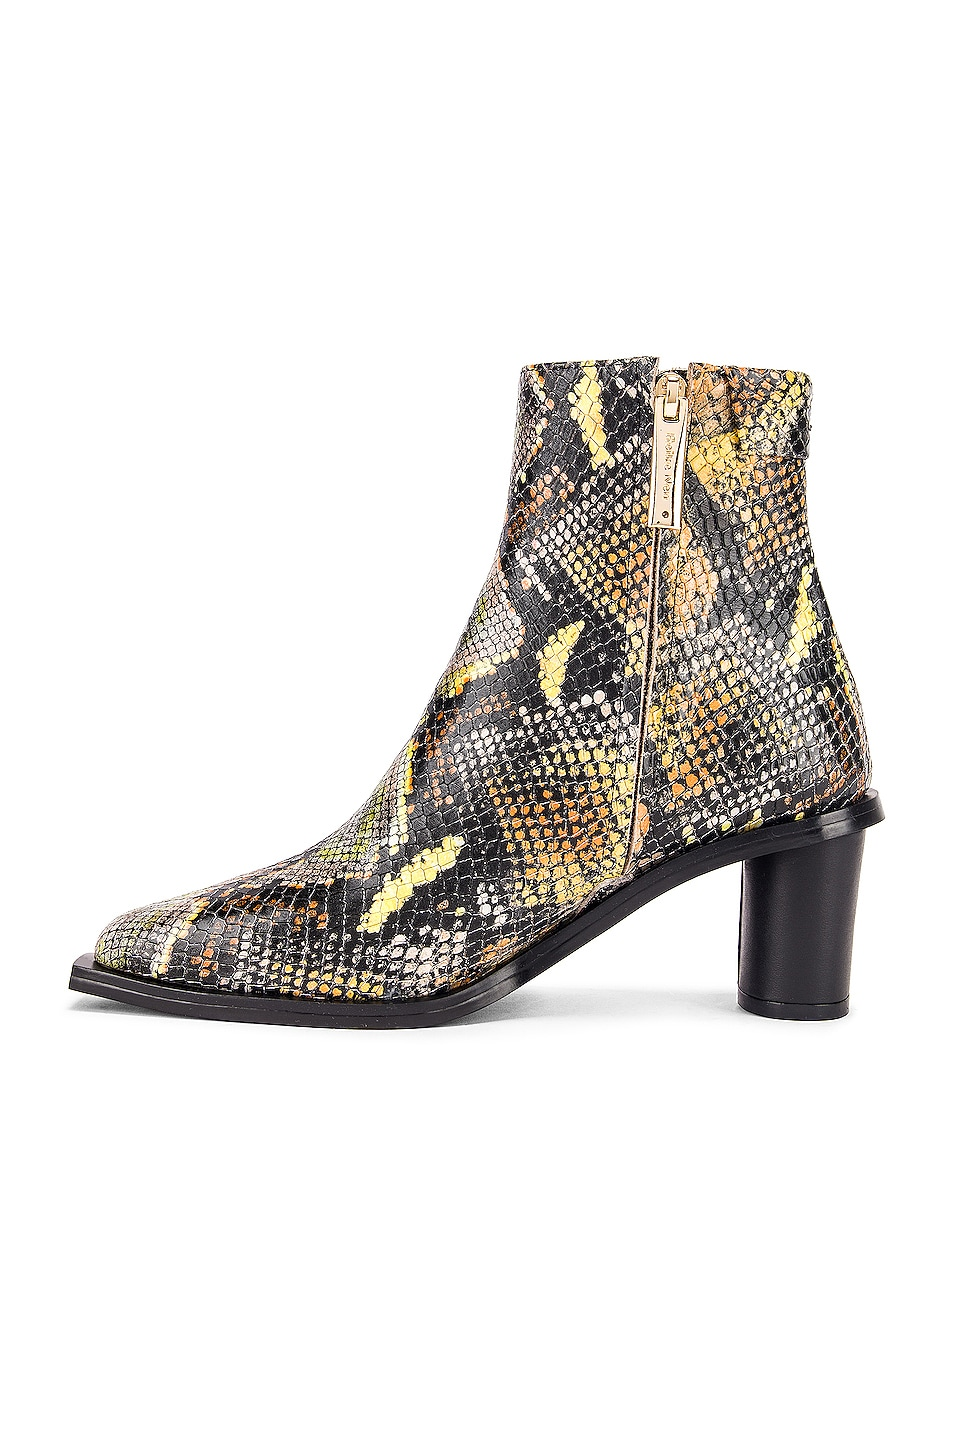 Image 5 of Reike Nen Oval Heel Ankle Boots in Orange Multicolor